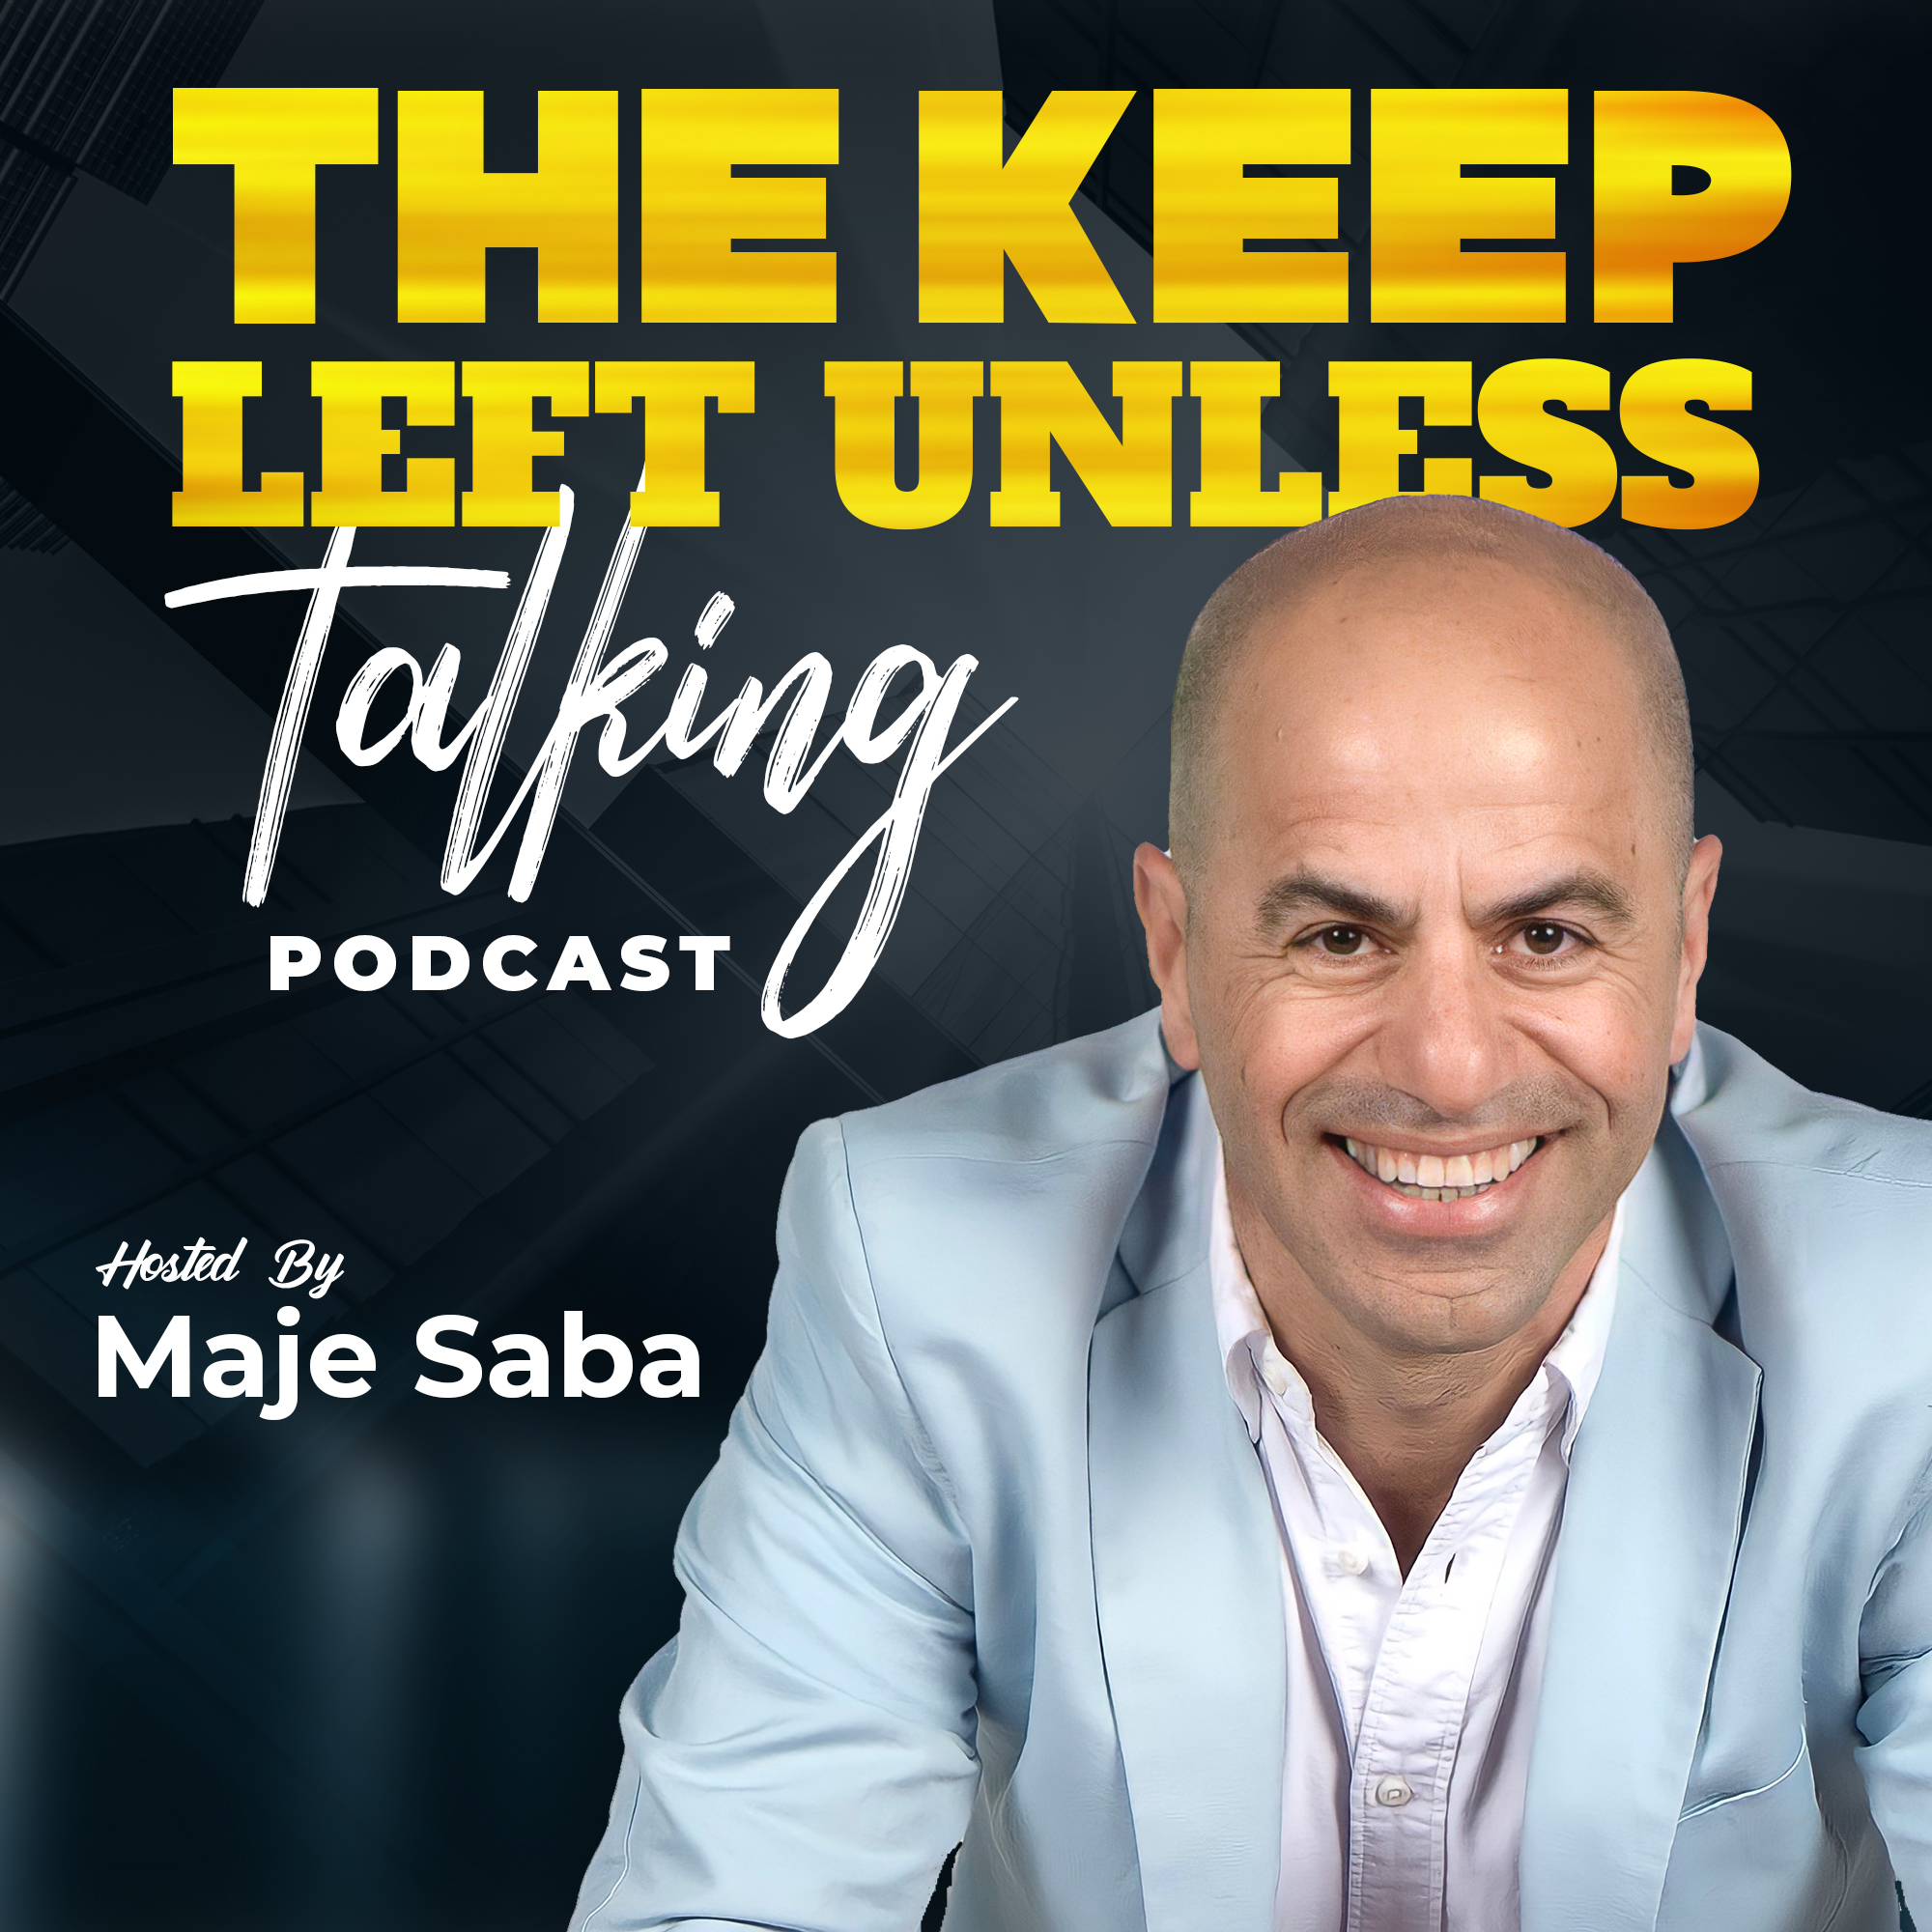 The Keep left unless talking Podcast with Maje Saba. show art